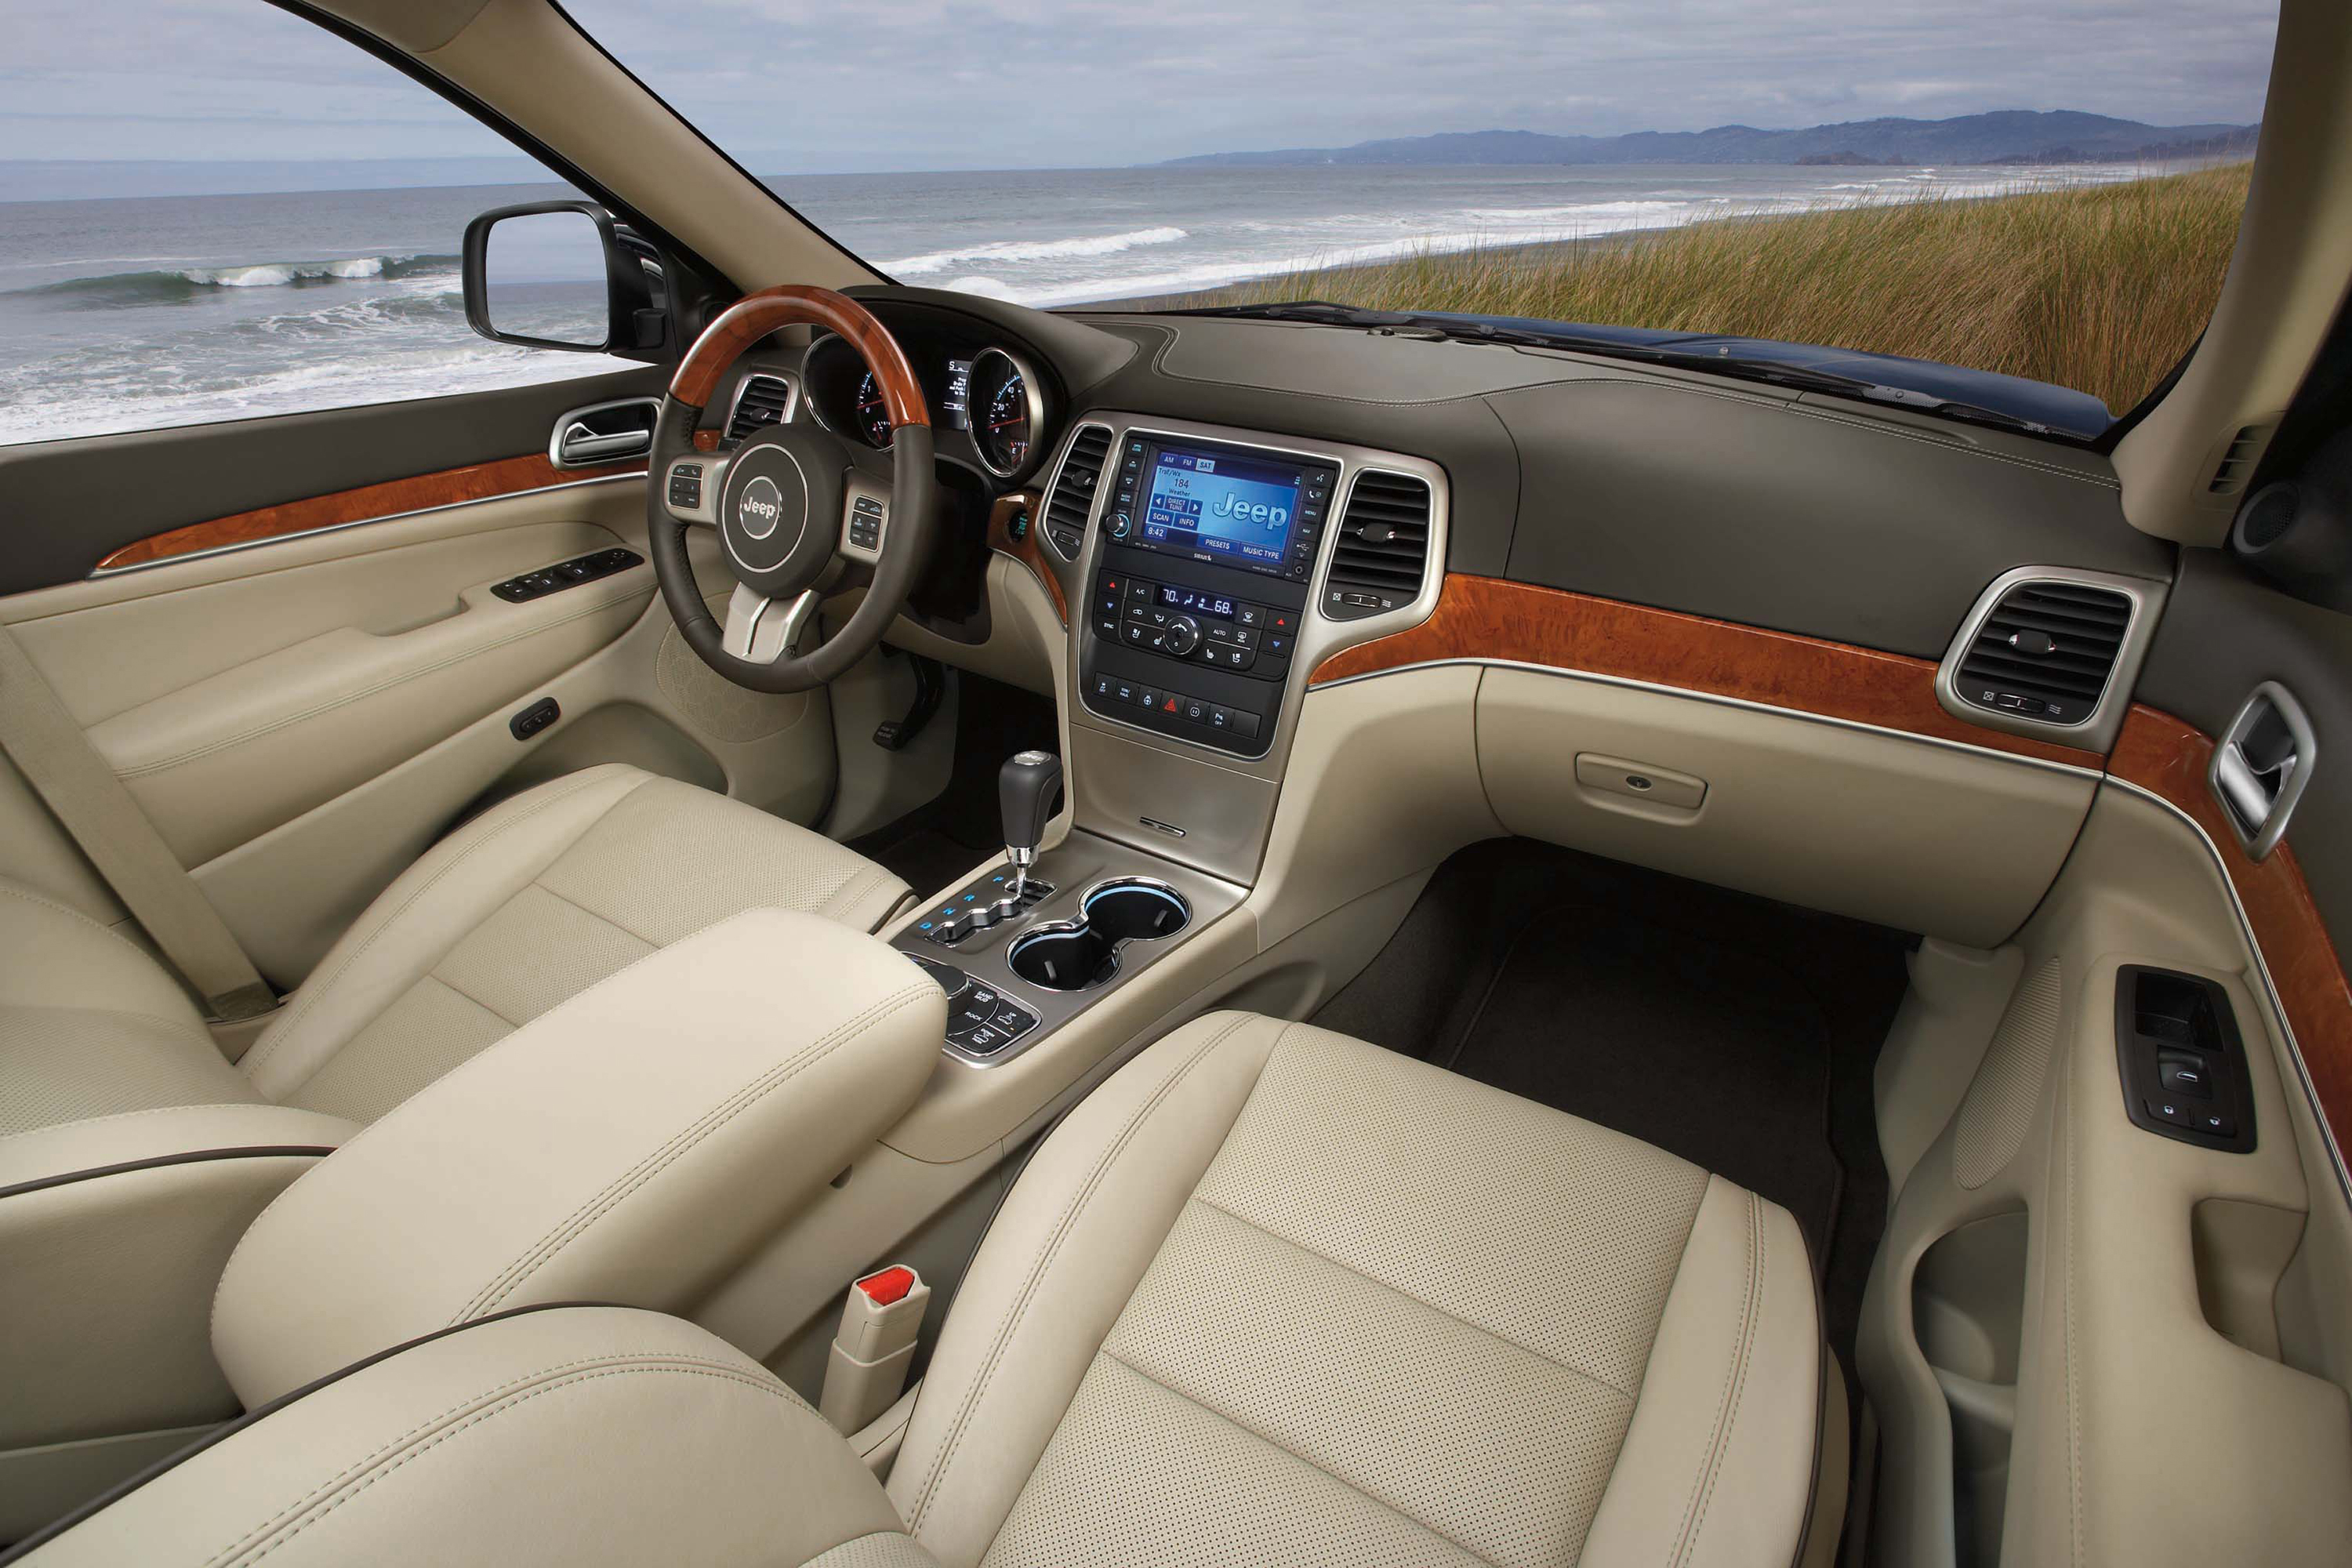 Jeep Grand Cherokee Overland A Luxury Package With Off Road Dna Albuquerque Journal